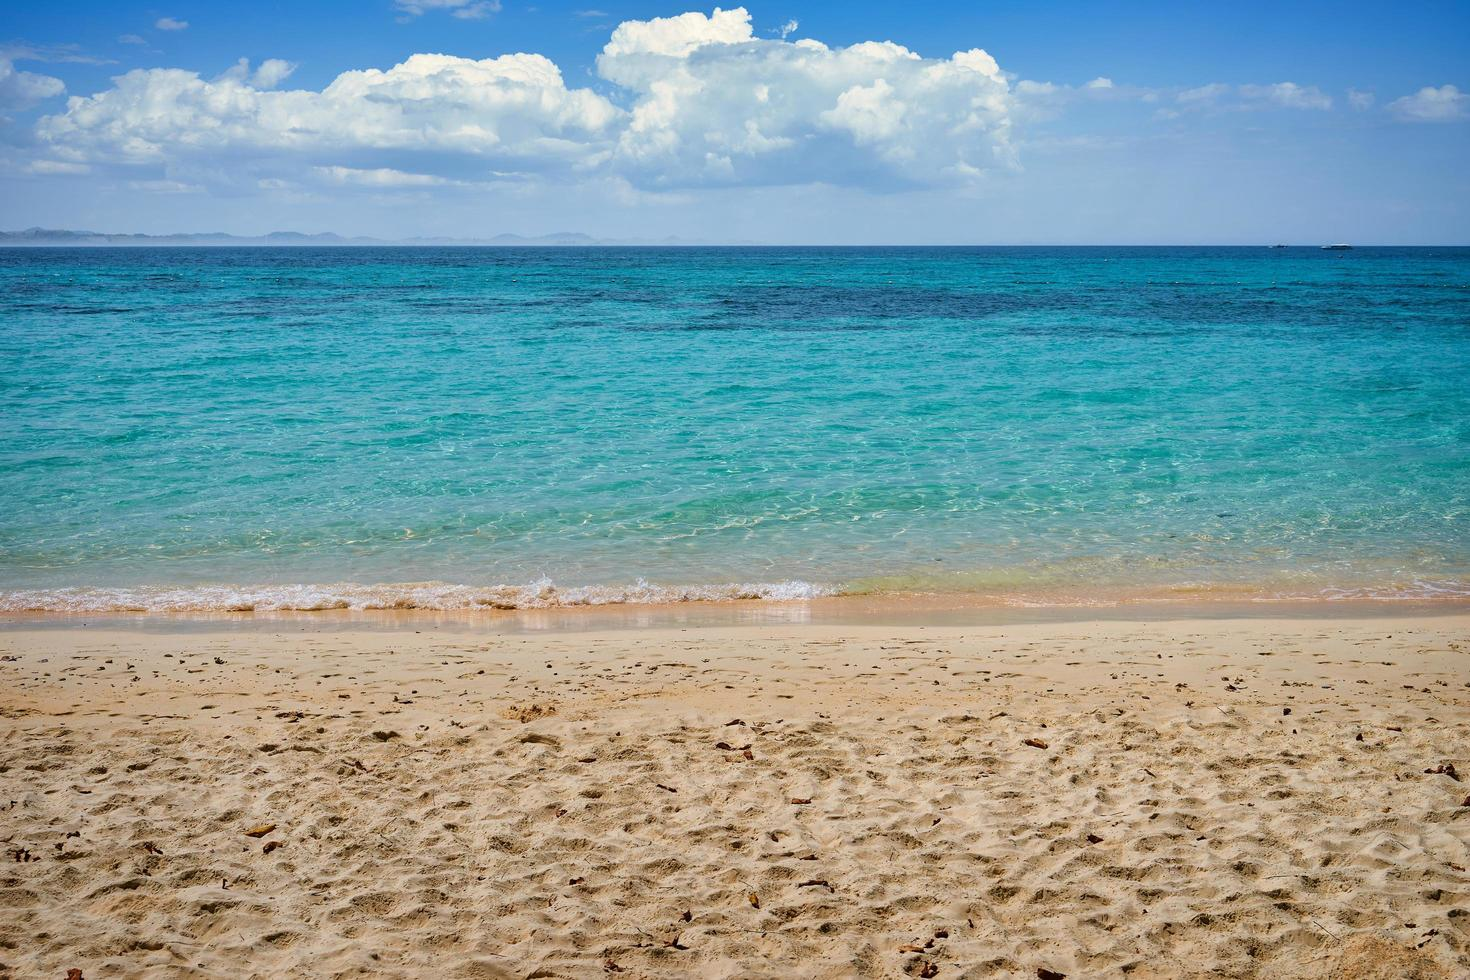 Beach and water with cloudy blue sky photo